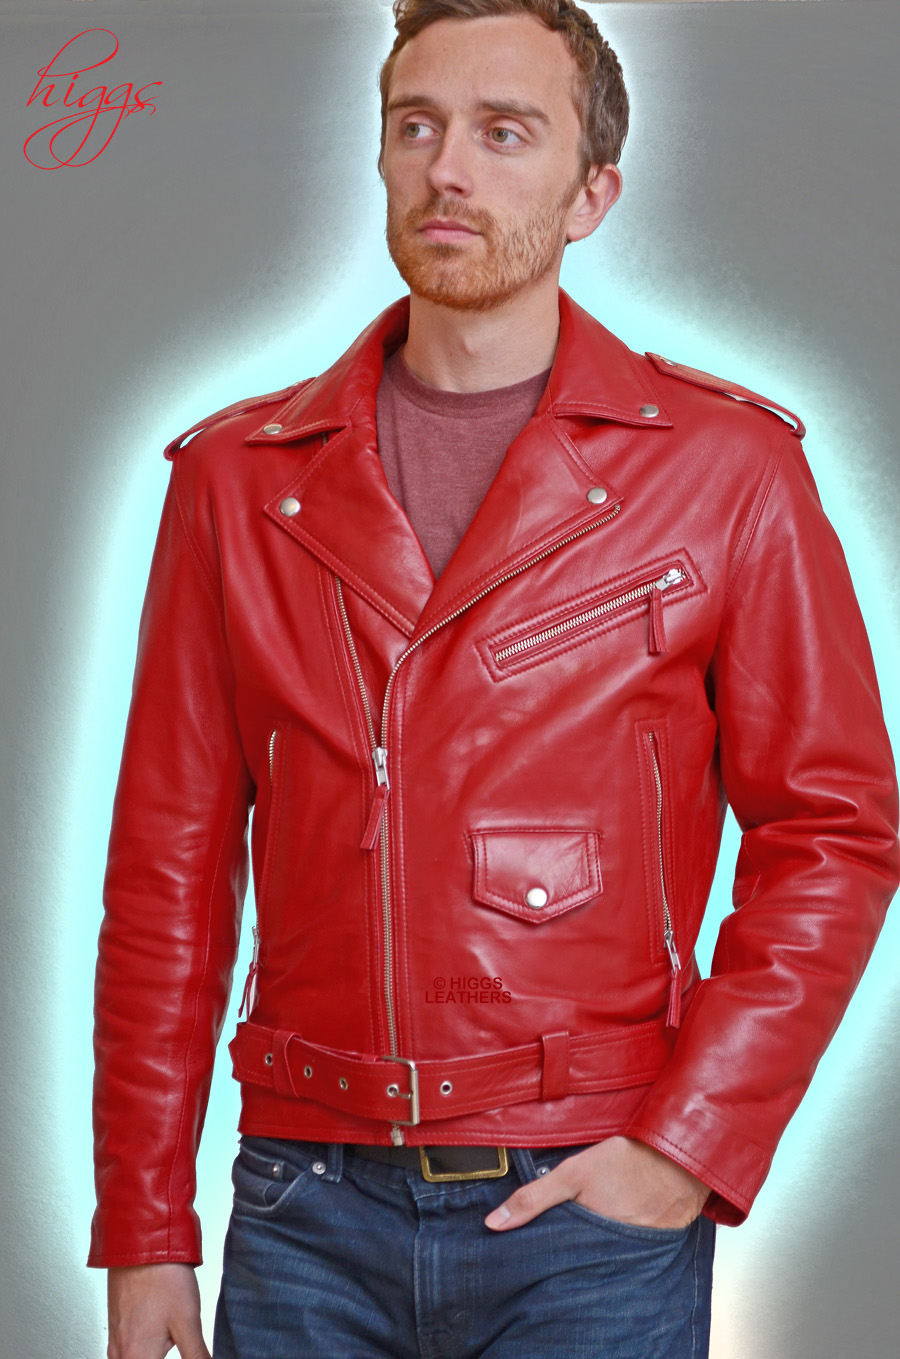 Higgs Leathers {NEW STOCK!}  Brandex (men's Red Leather Biker jackets) Wonderful value!